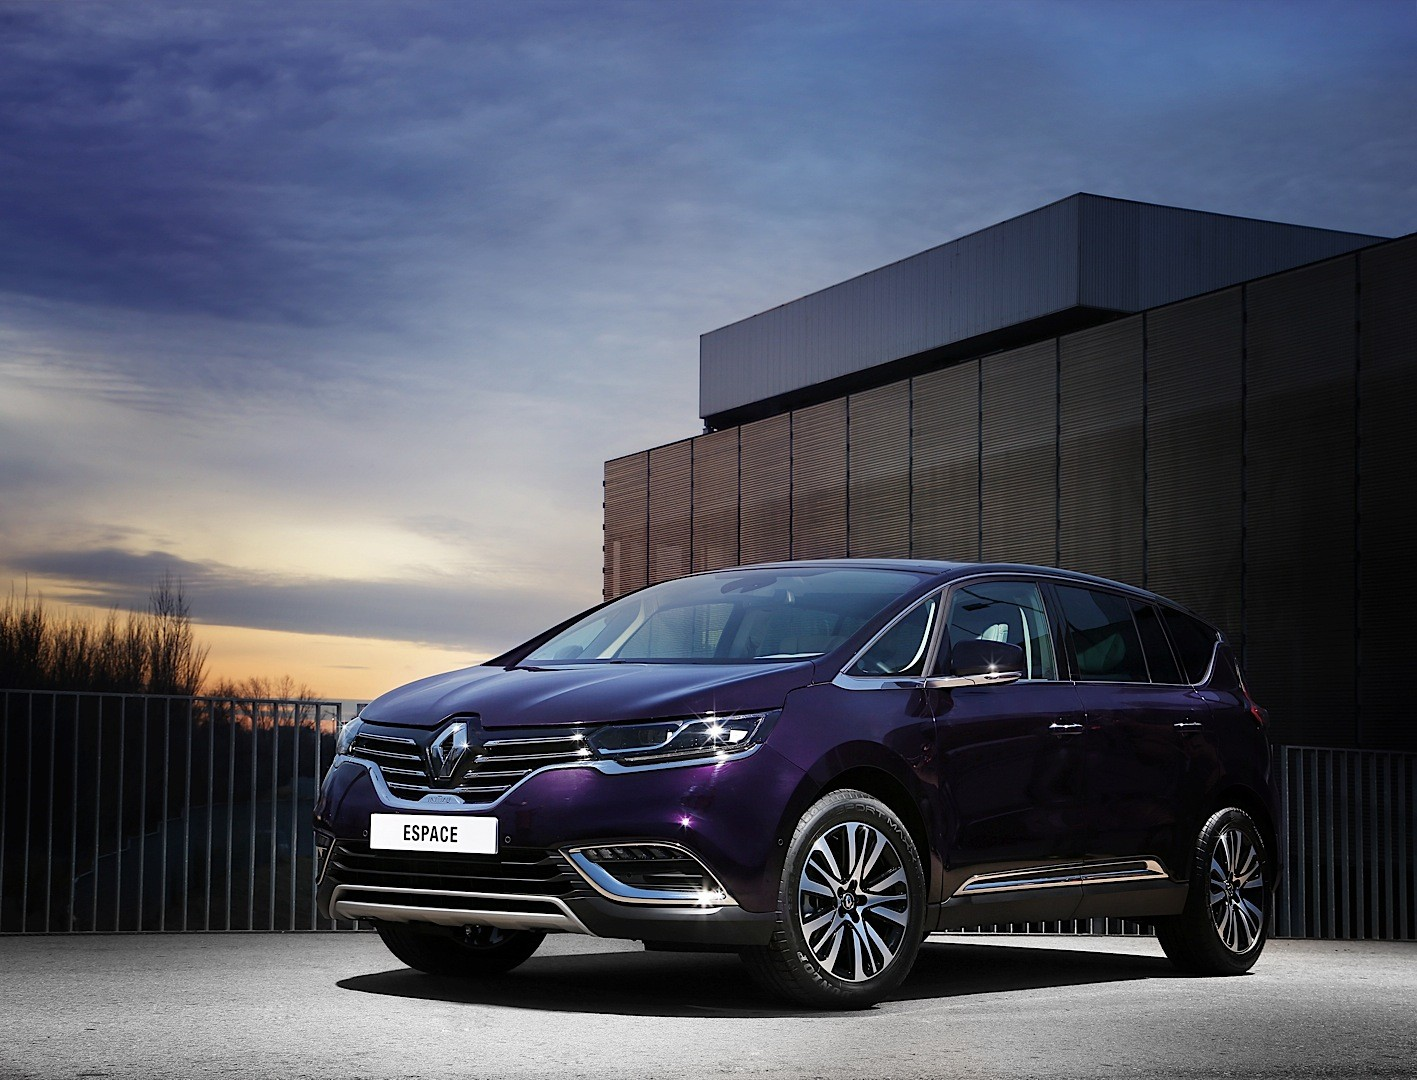 2015 renault espace looks stunning in dark amethyst for Espace stand